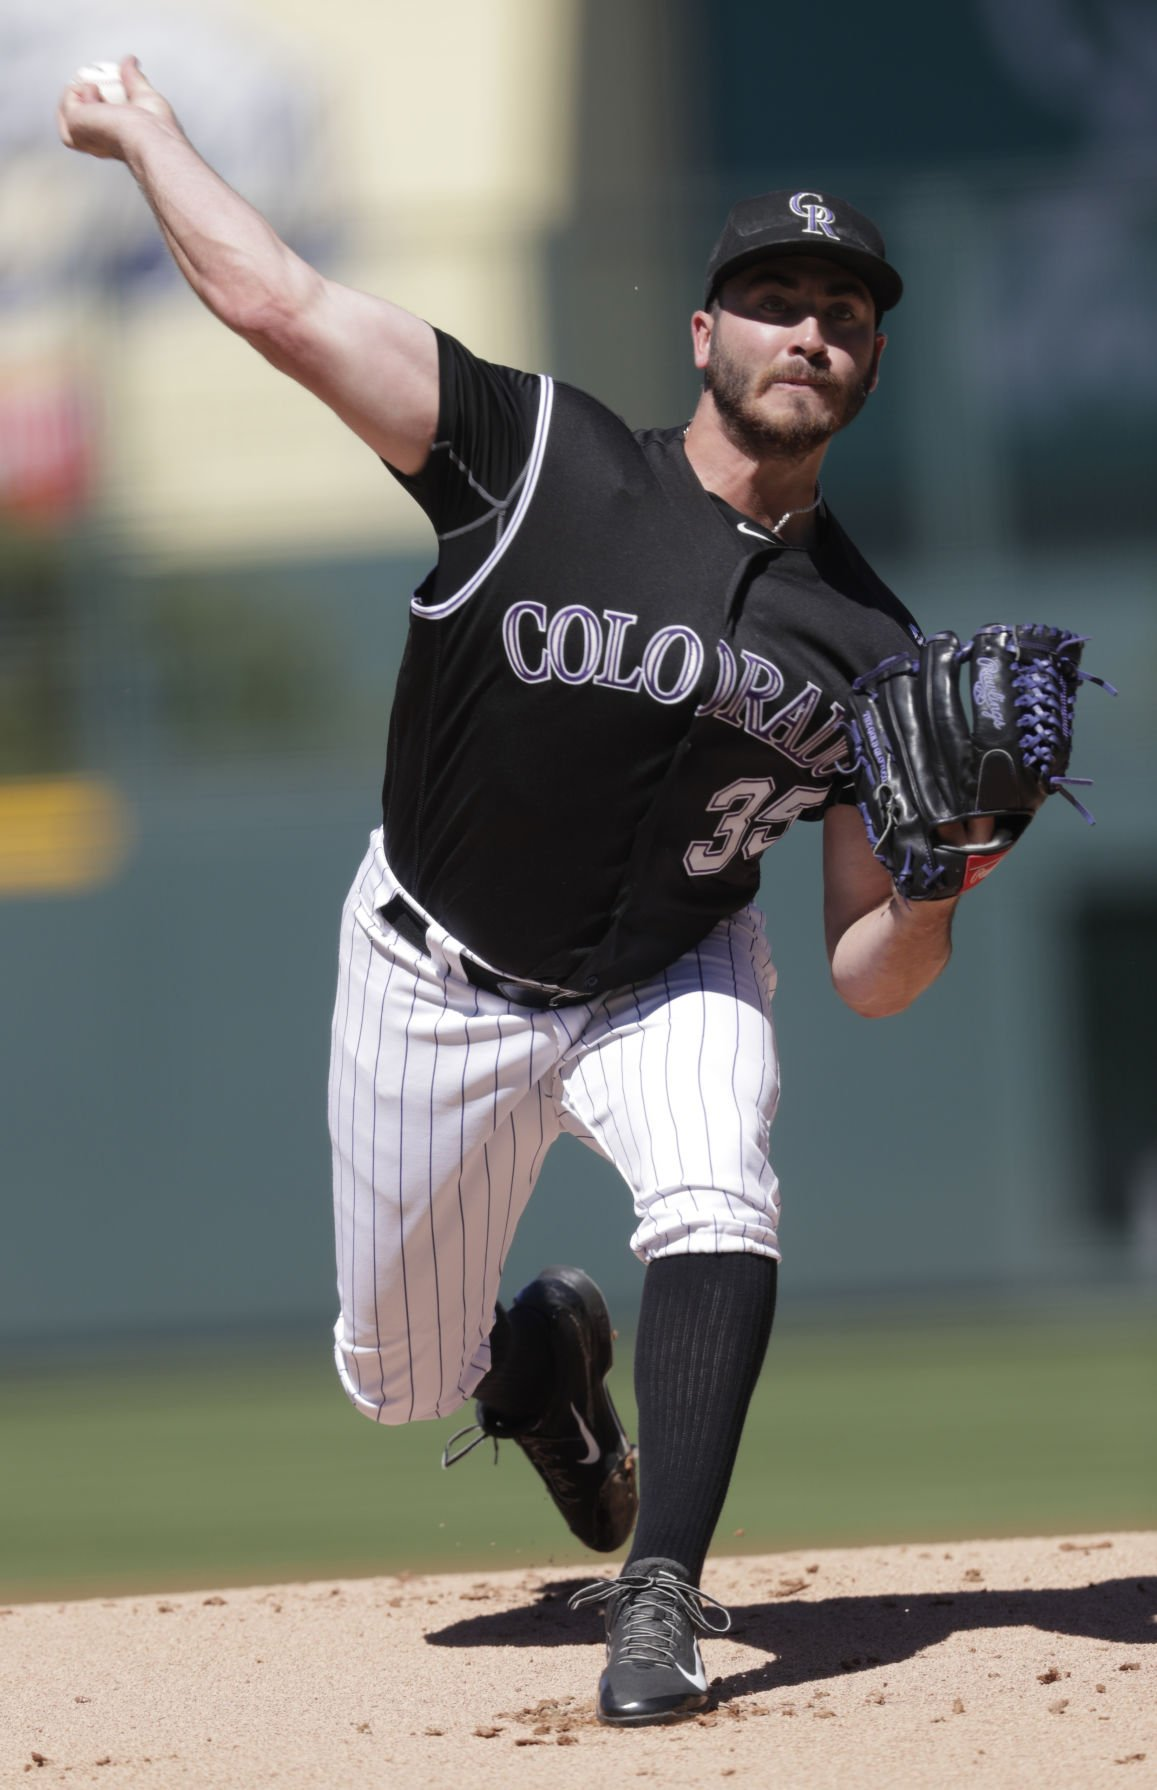 d14dc07aa0afa Woody Paige  Colorado Rockies need rotation replacement for Chad Bettis and  a fifth starter